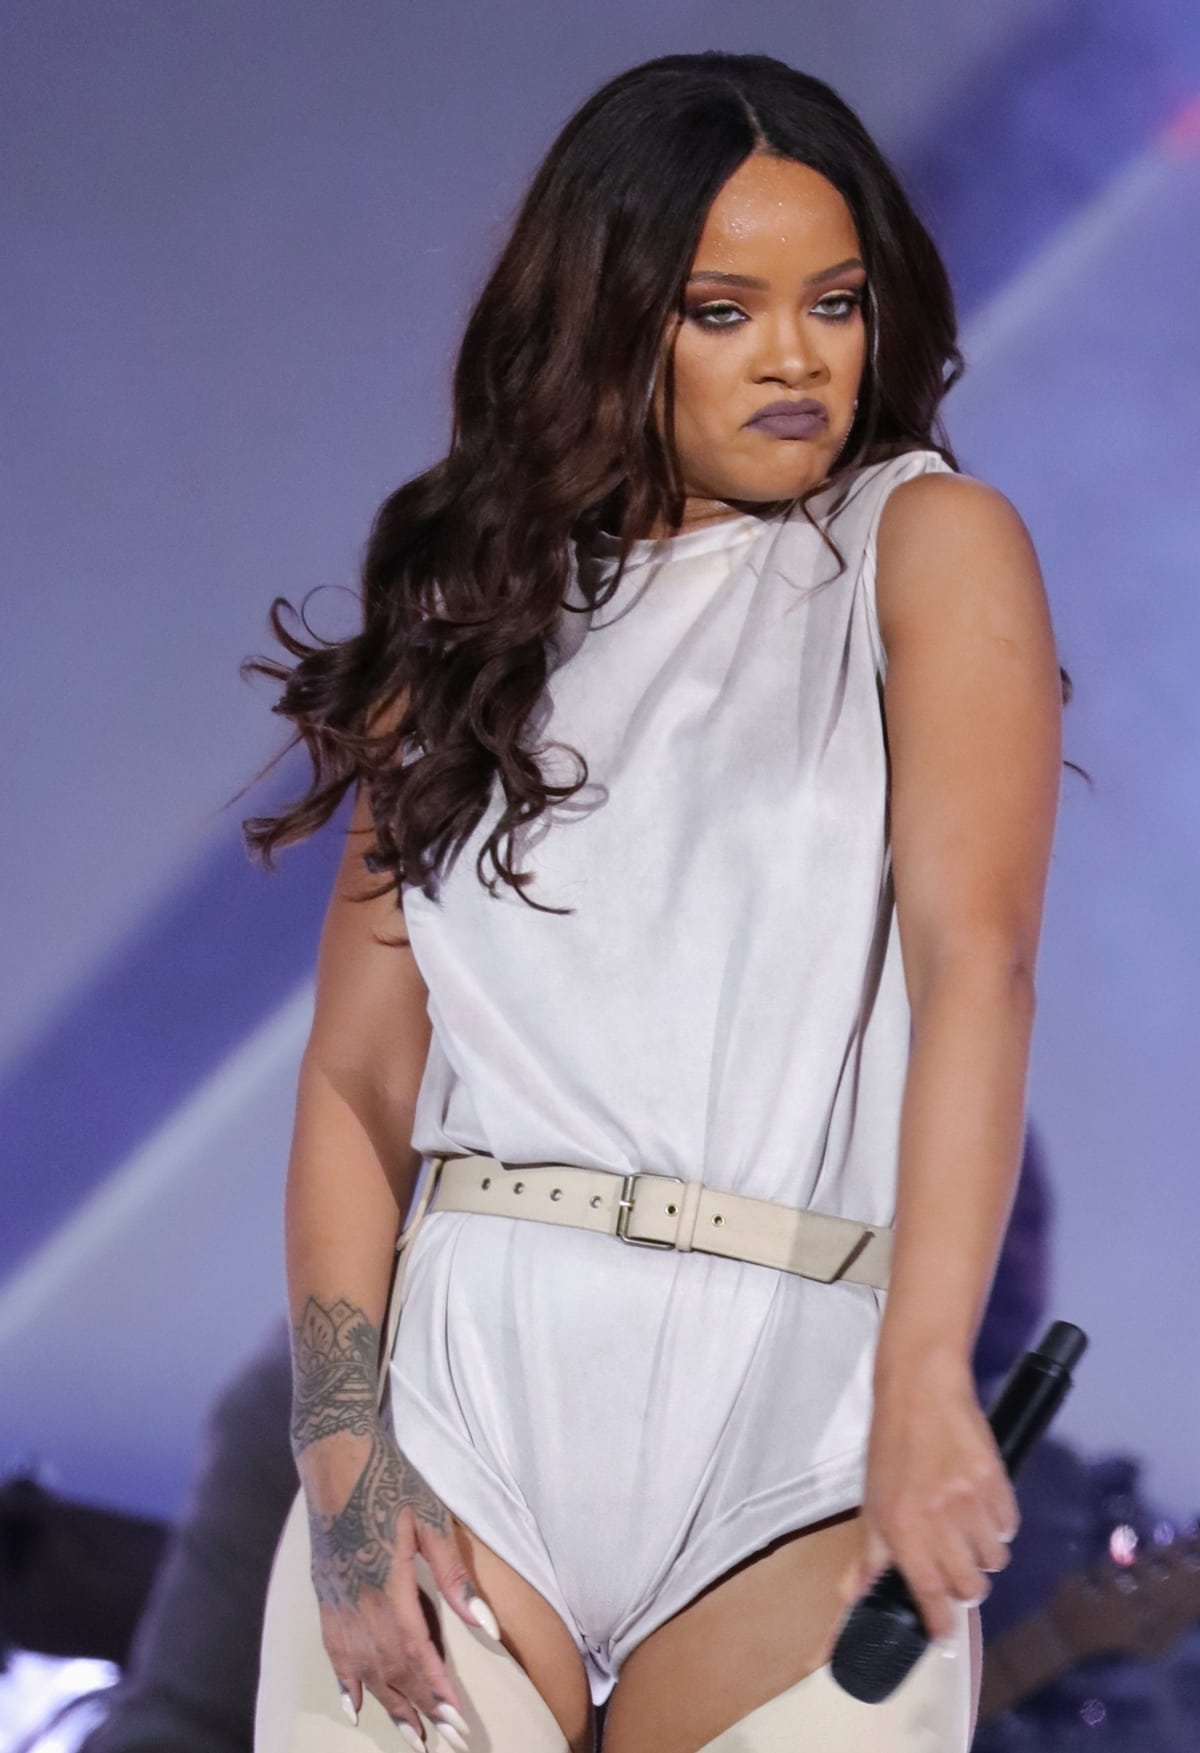 With a net worth of $1.7 billion, Rihanna is the wealthiest female musician in the world